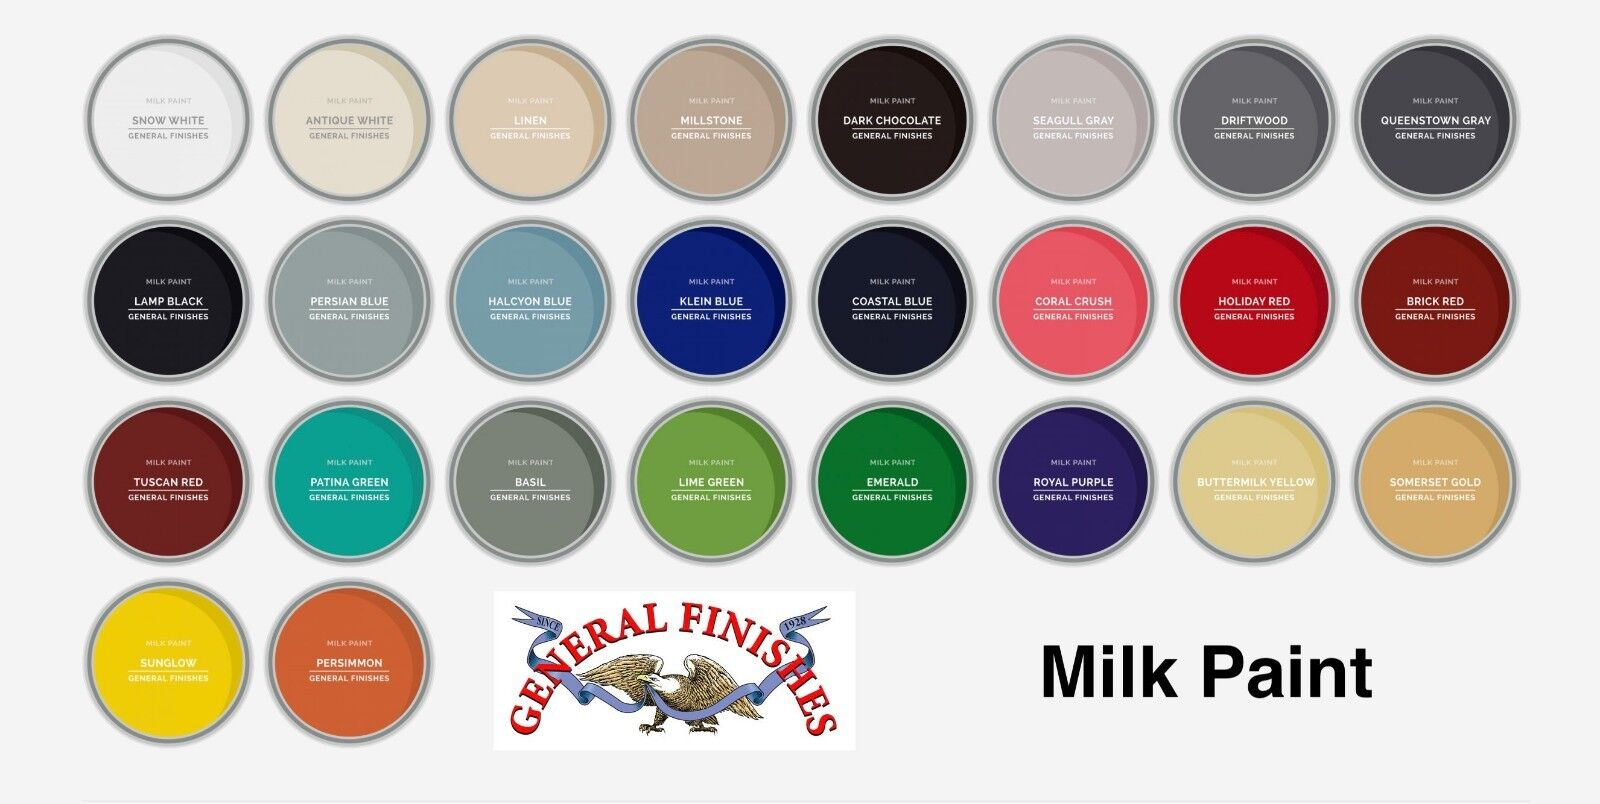 General Finishes Water Based Milk Paint 1 Quart, All Current Colors Available! Building & Hardware